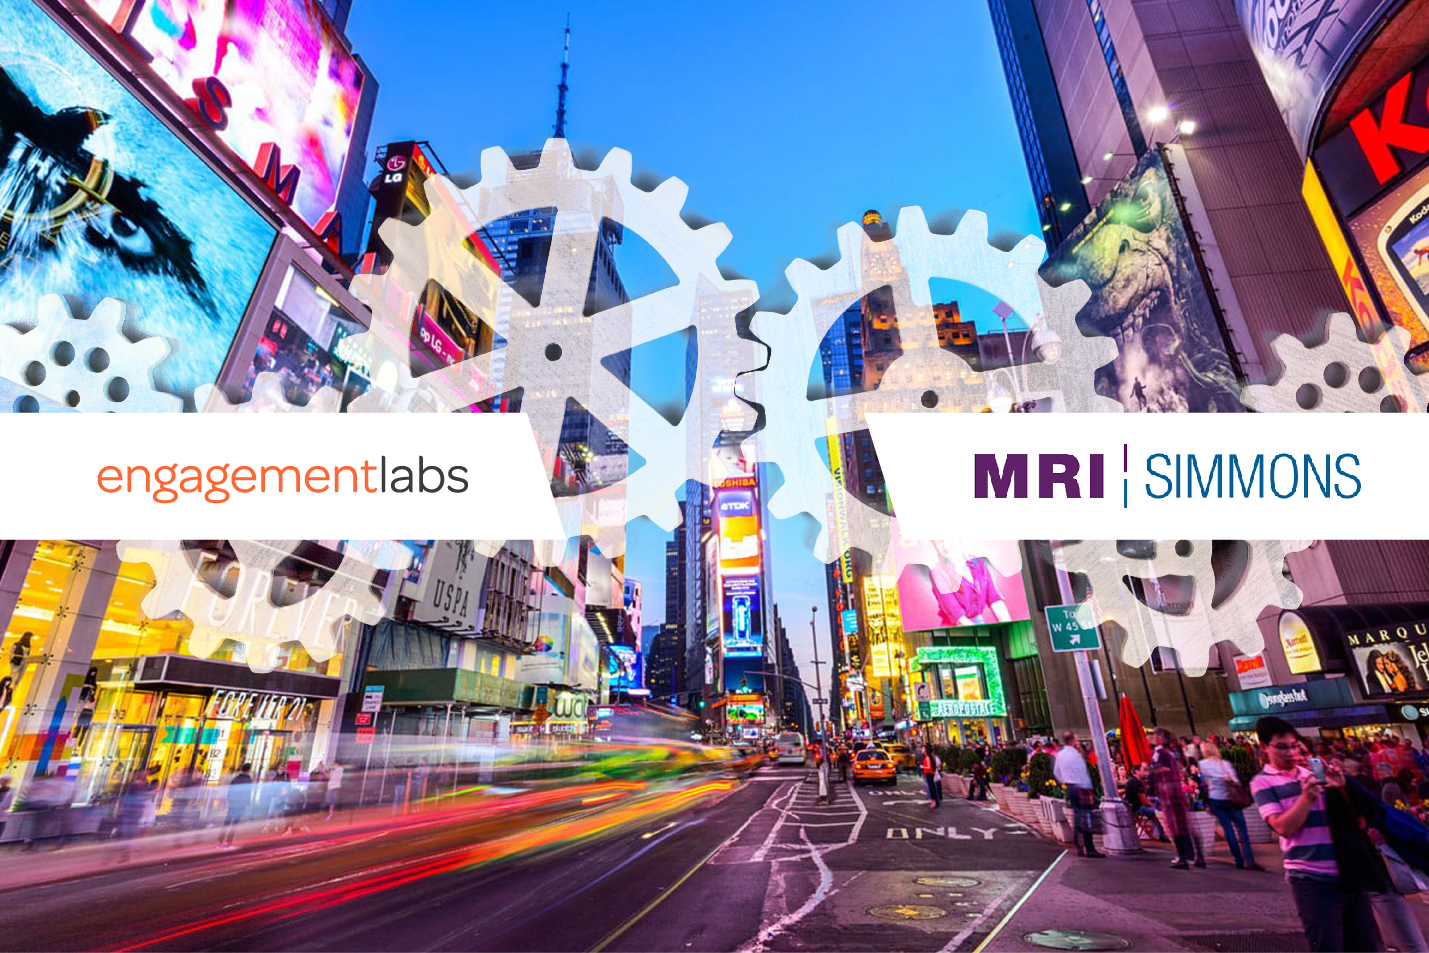 MRI-Simmons, Engagement Labs partner to help brands, agencies harness the power of word-of-mouth